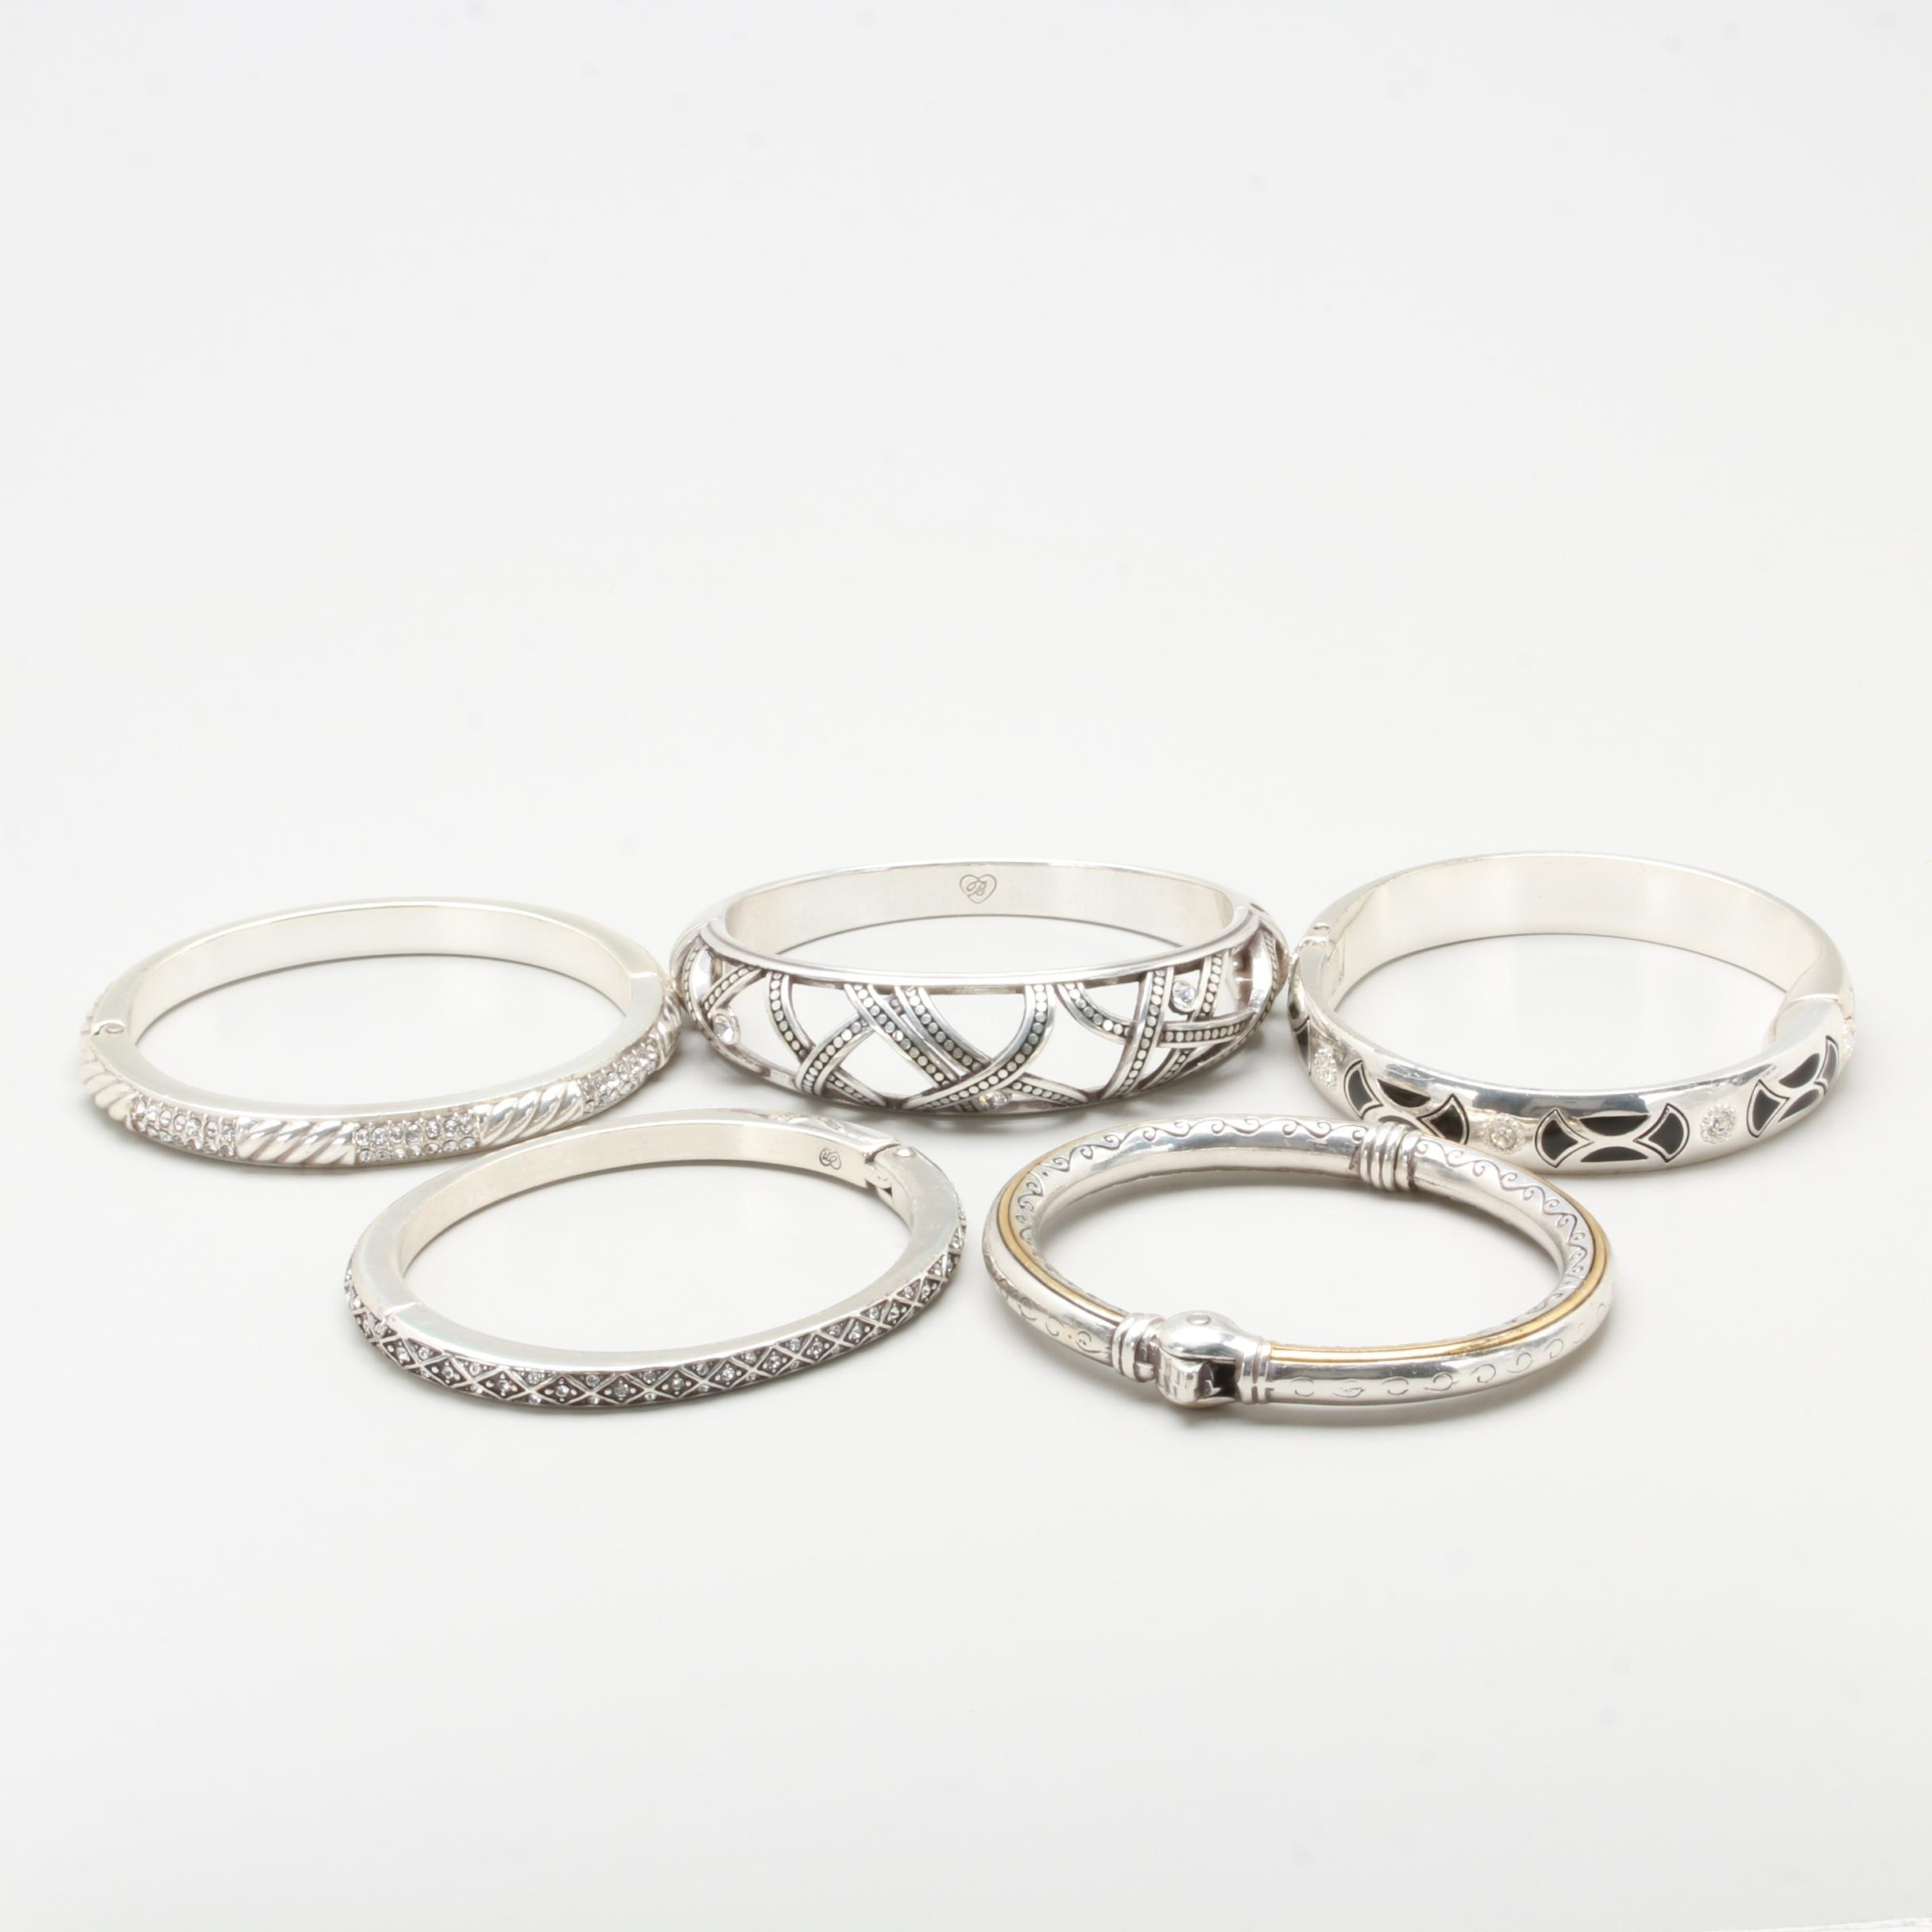 Silver Tone Bracelet Selection Including Enamel and Glass